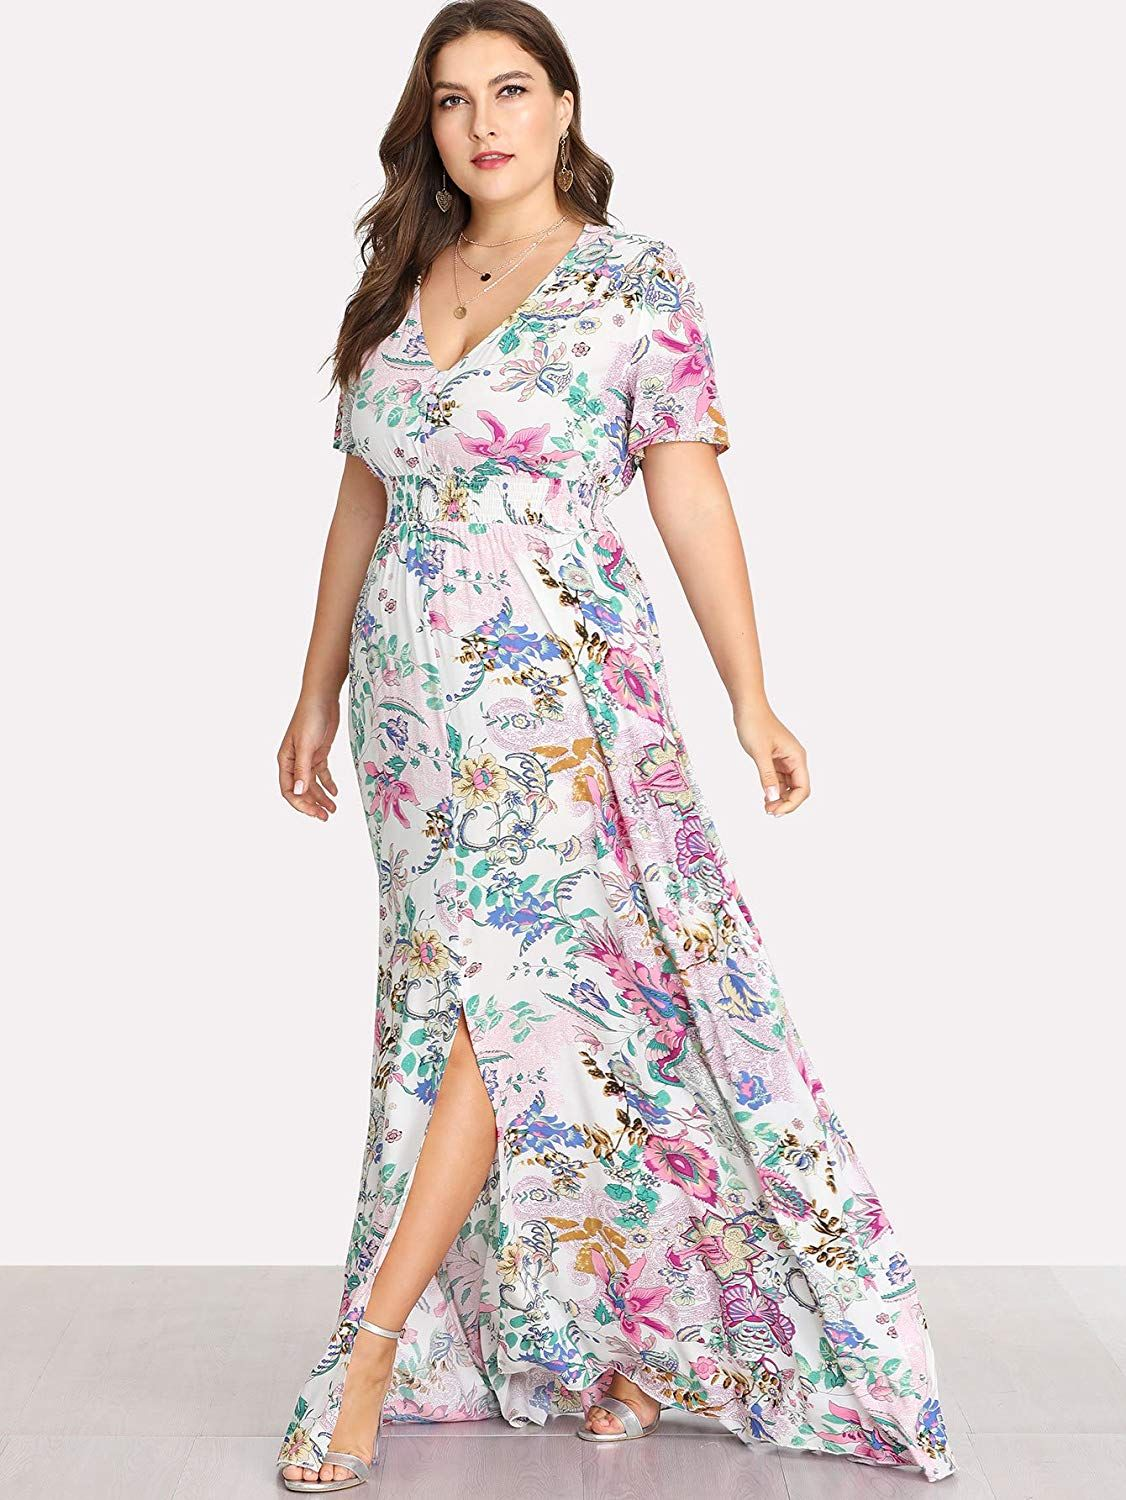 4a10c7cbbd Romwe Women's Plus Size Floral Print Buttons Short Sleeve Split Flowy Maxi  Dress #fall dresses to wear to a wedding #formal dresses short #tanktop  dress ...